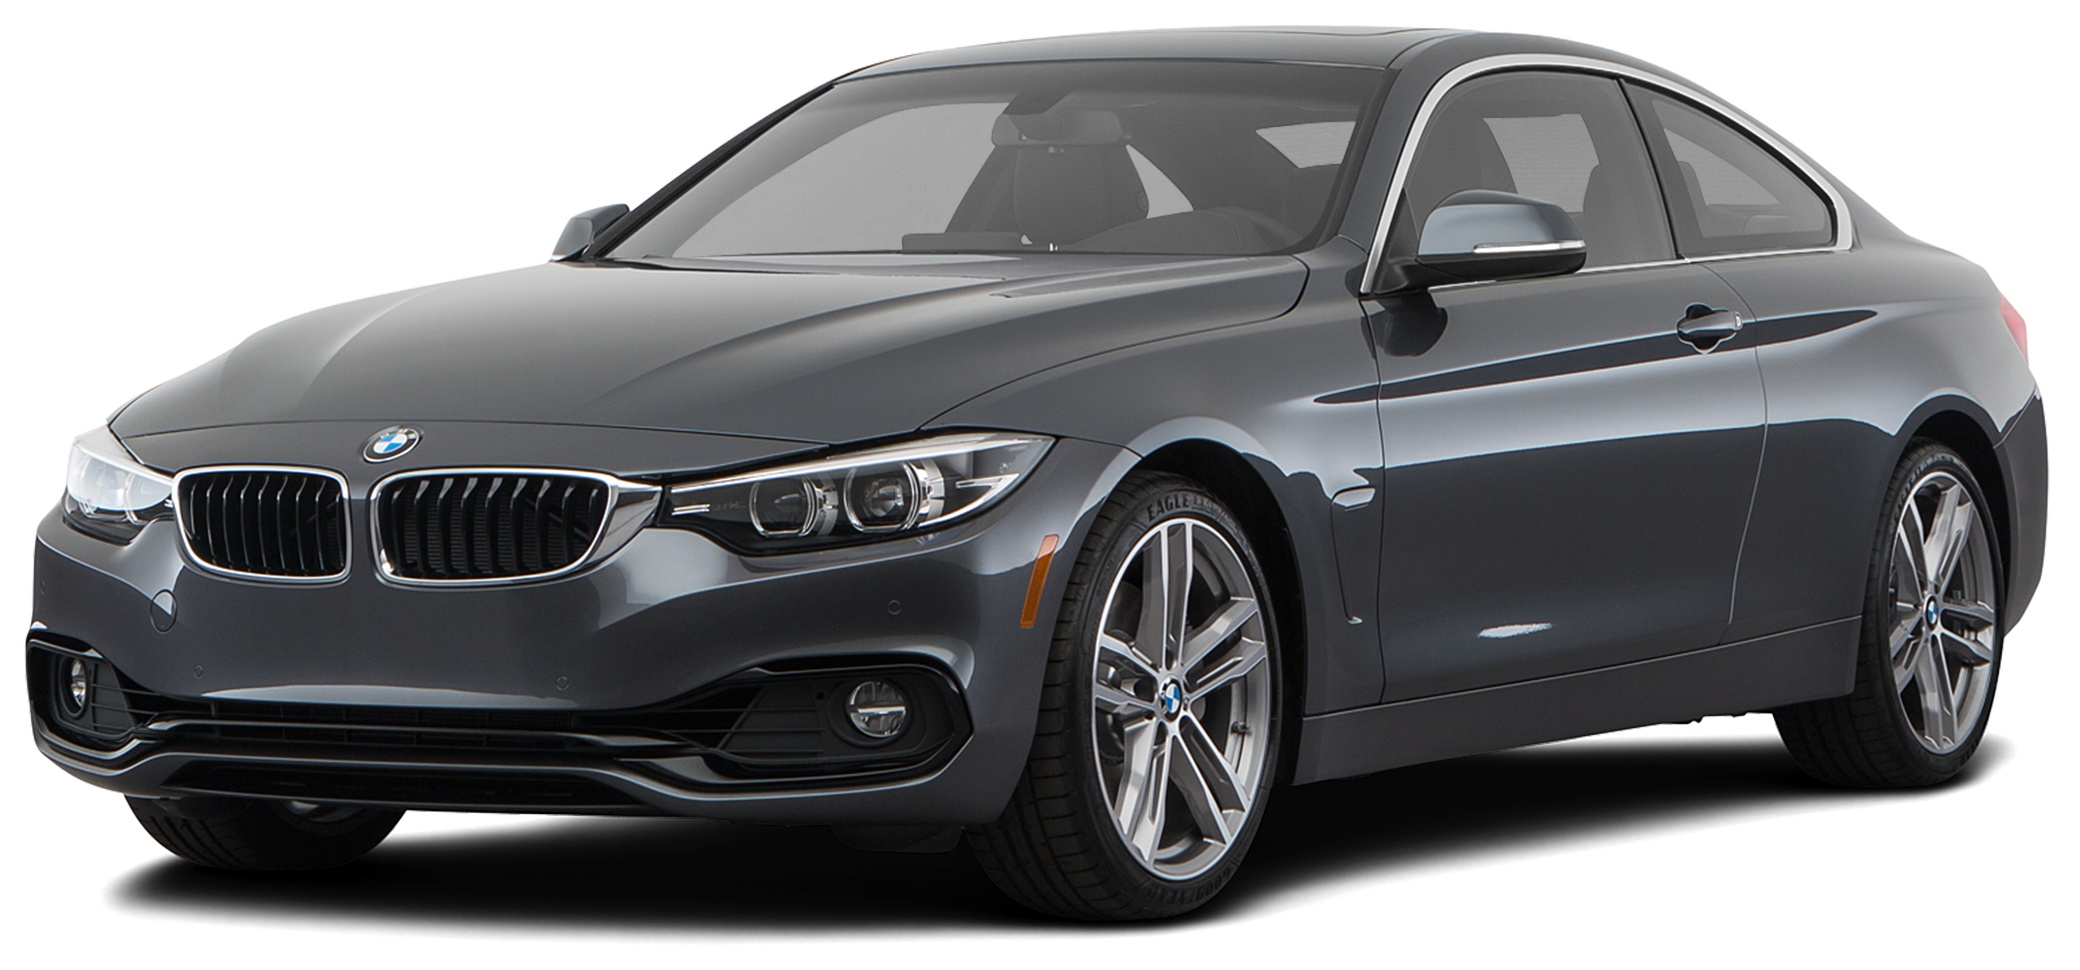 2019 bmw 430i incentives specials offers in silver. Black Bedroom Furniture Sets. Home Design Ideas